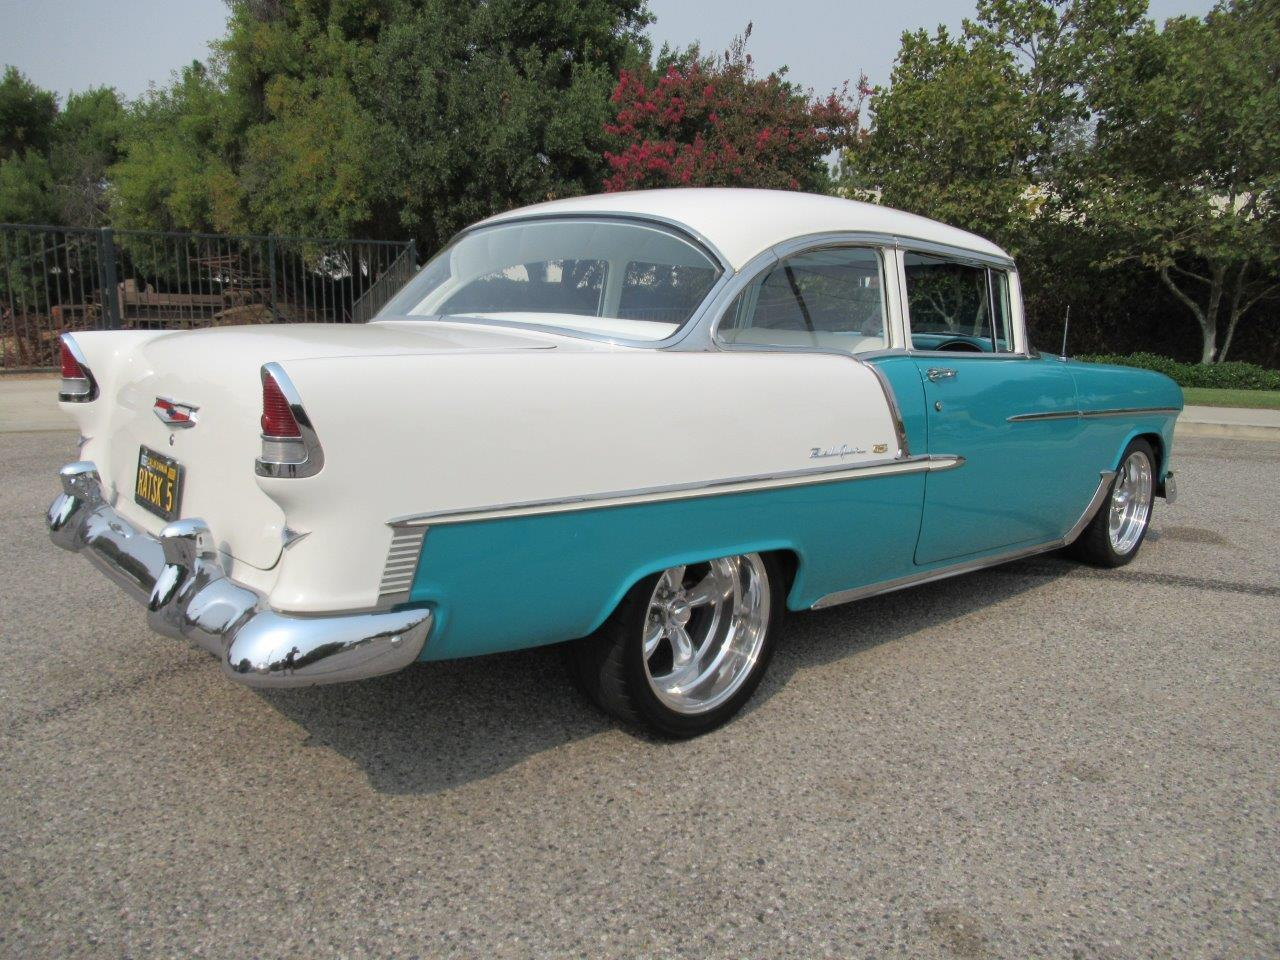 1955 Chevrolet Bel Air (CC-1388484) for sale in Simi Valley, California